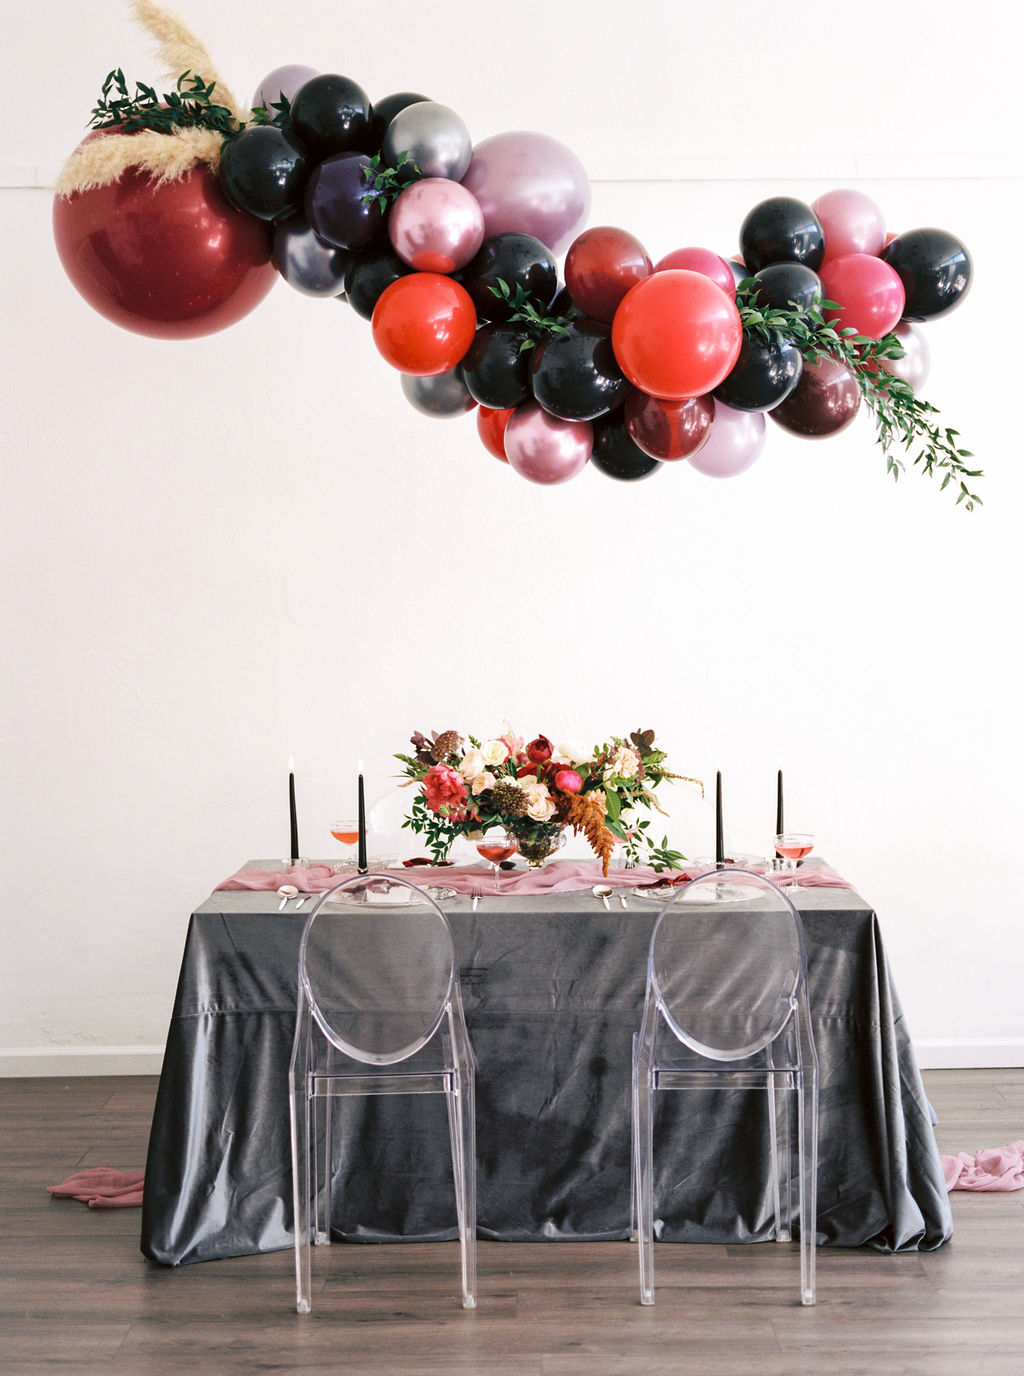 Linens and Balloon Installation Inspirations for New Year Events and Weddings